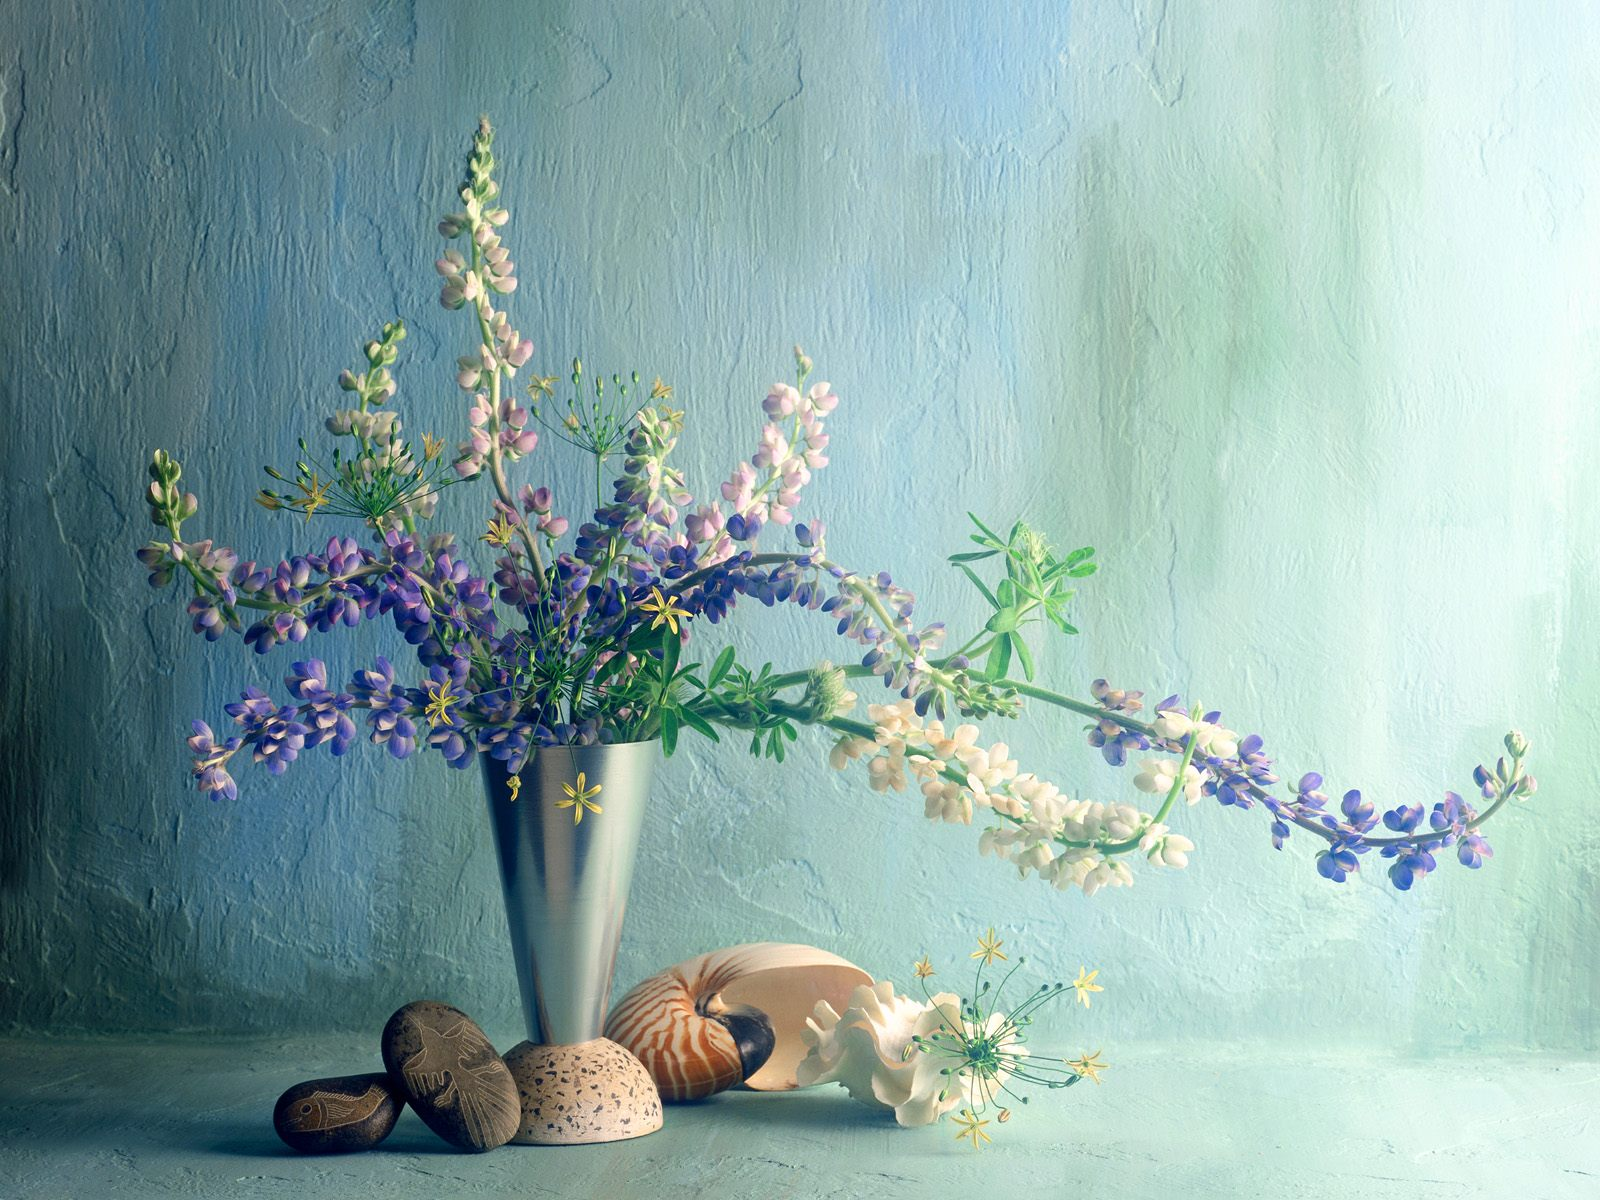 http://2.bp.blogspot.com/_Ym3du2sG3R4/TBlCjr-kVSI/AAAAAAAACf4/U0iK5SFZaNU/s1600/Beautiful-Arrangement-Flower-wallpaper.jpg